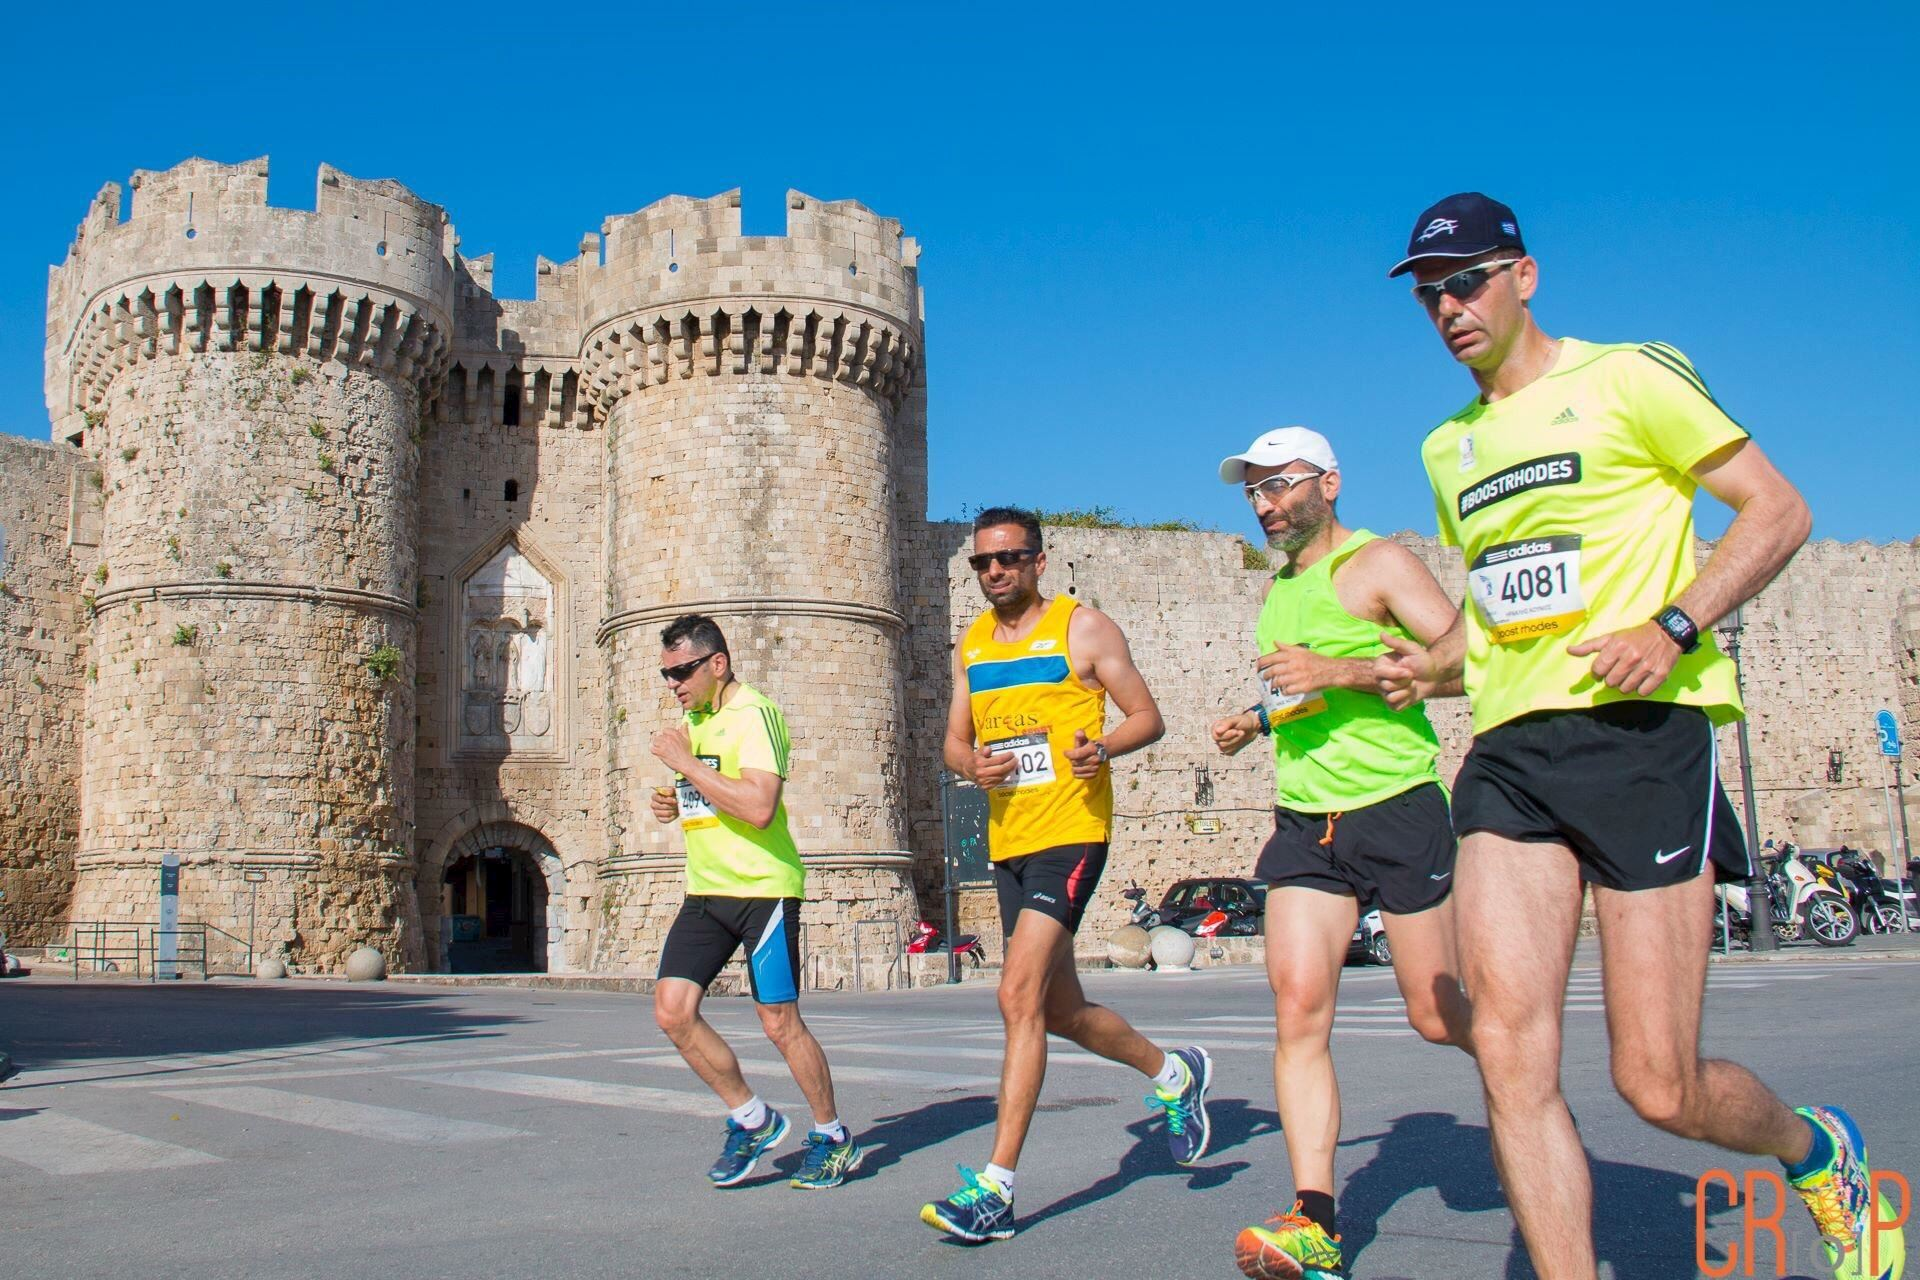 Meet up with the organizers of Roads to Rhodes Marathon